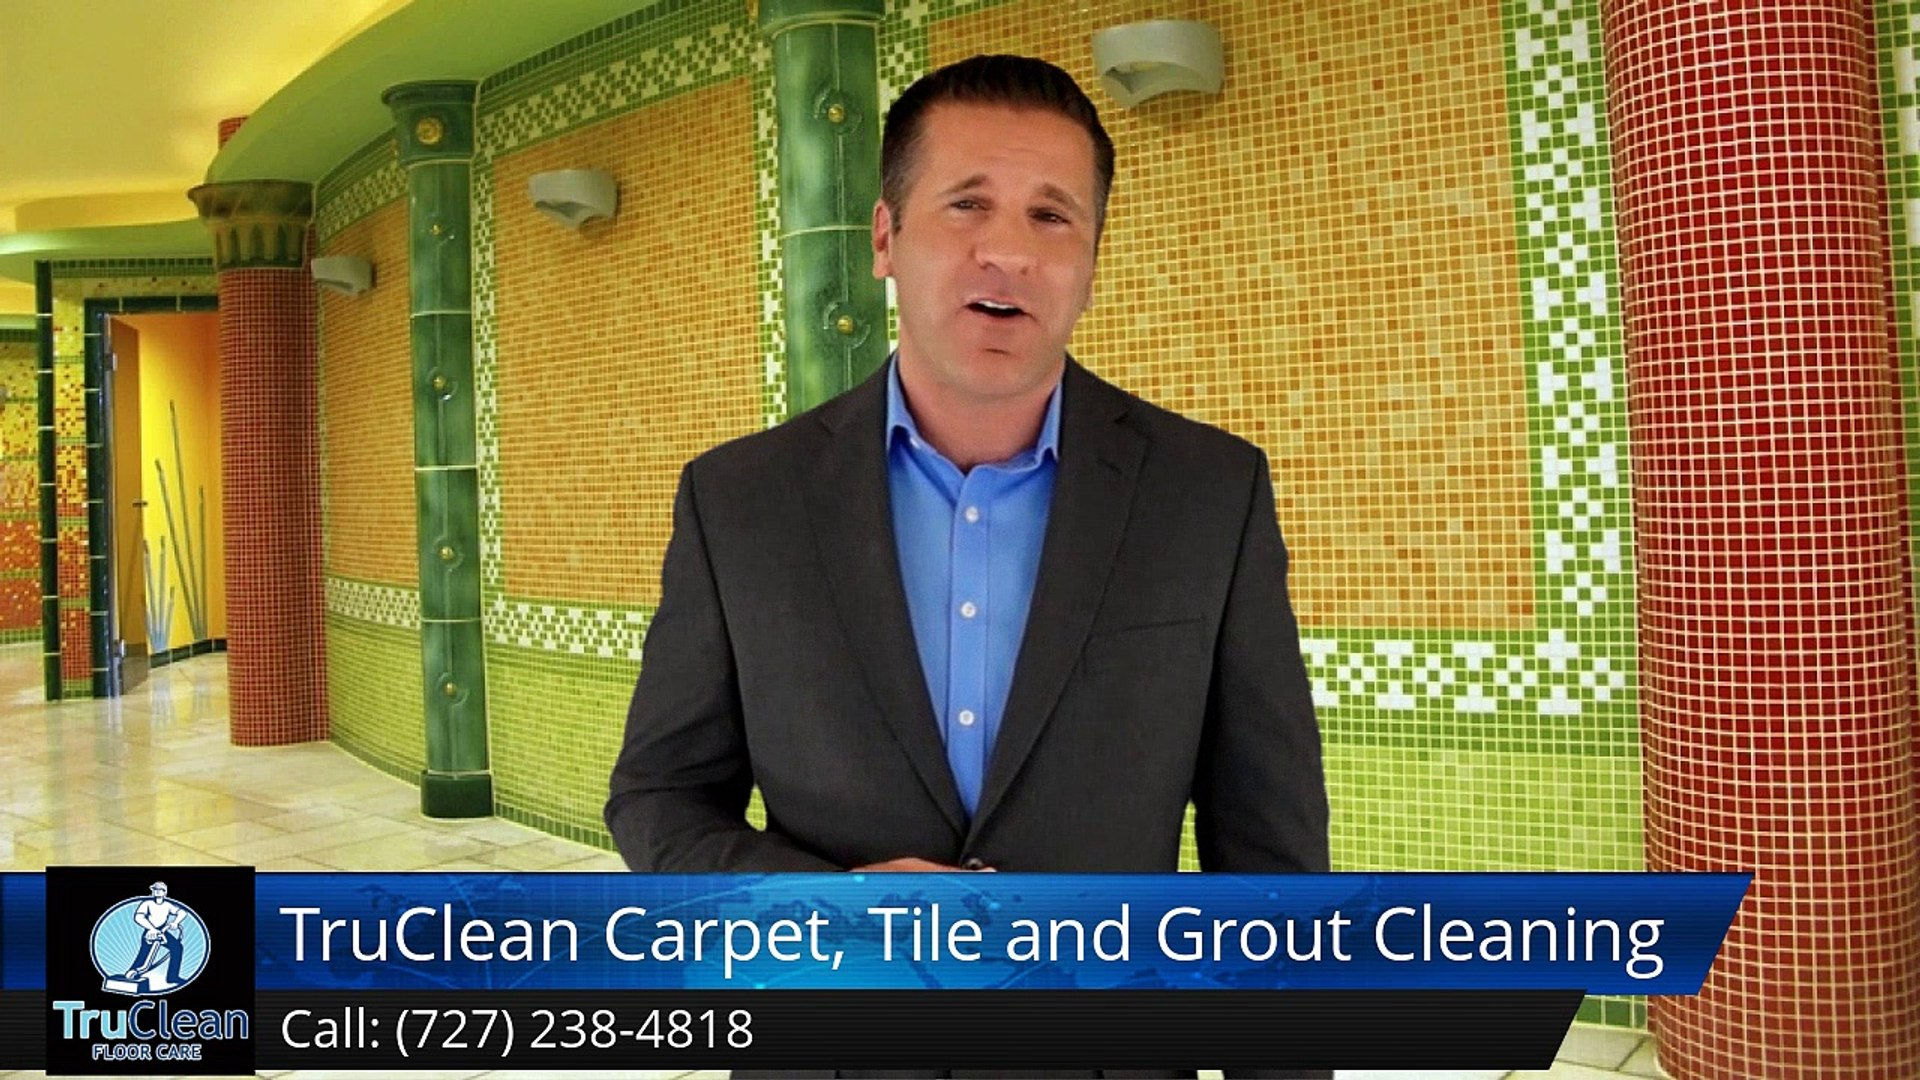 Clearwater FL Carpet Cleaning & Tile & Grout Reviews, TruClean Floor Care Clearwater FL,